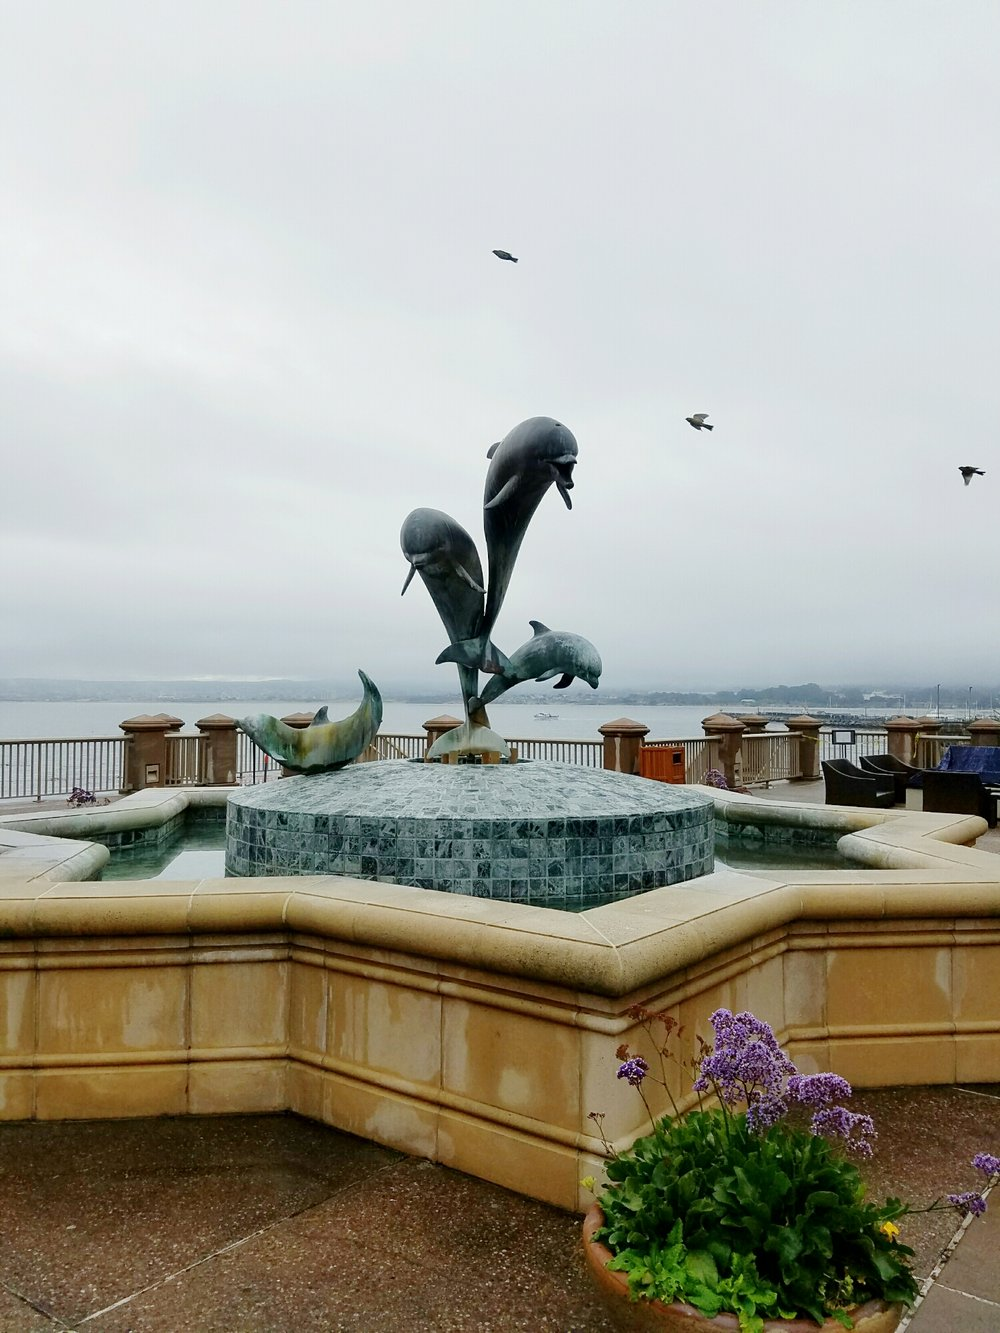 The Monterey Bay Inn dolphin sculpture overlooking the bay with morning fog.